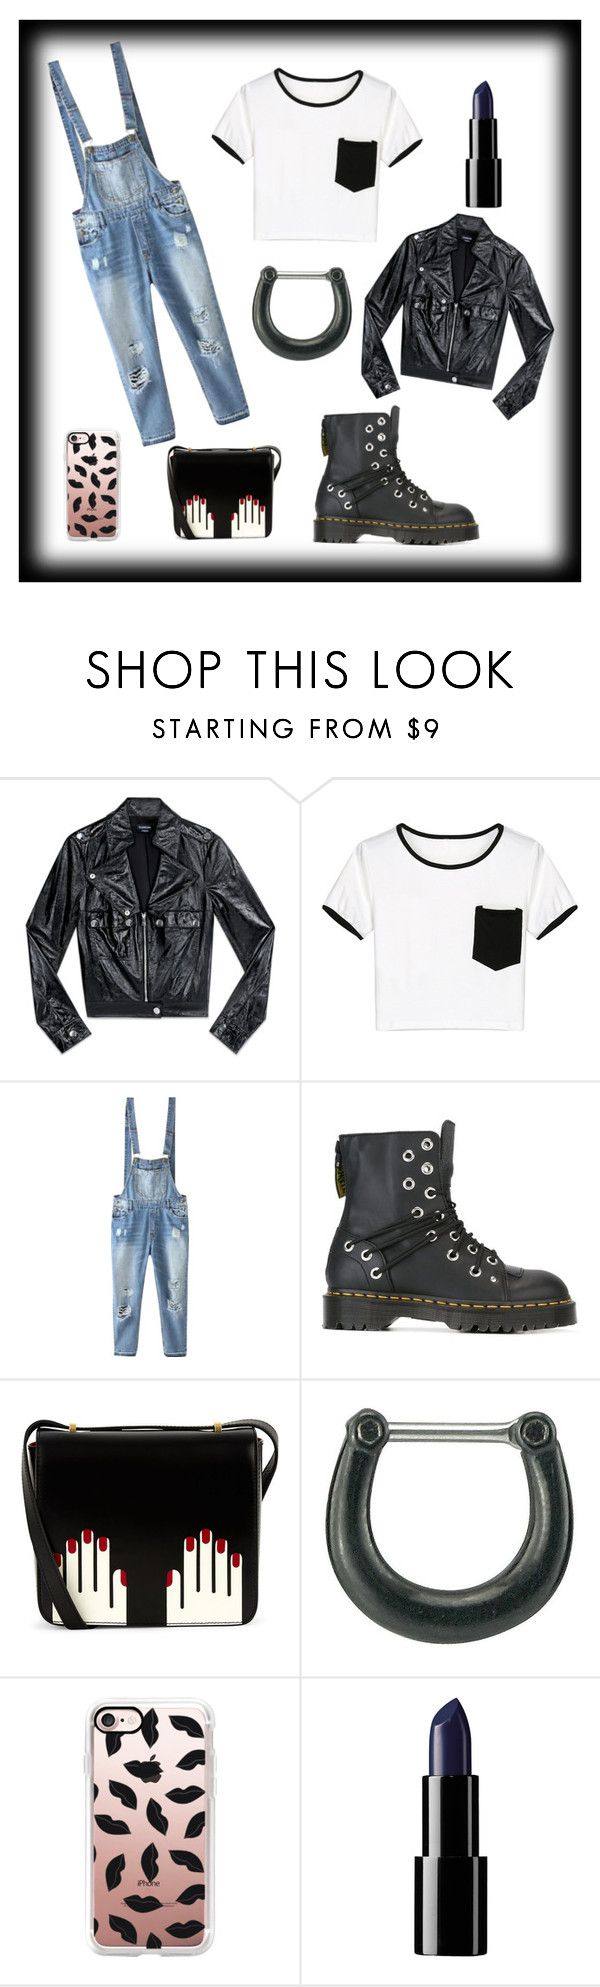 """""""Back in Black"""" by mary-sukala ❤ liked on Polyvore featuring Bebe, WithChic, Relaxfeel, Dr. Martens, Lulu Guinness, Target, Casetify, grunge and fashionset"""